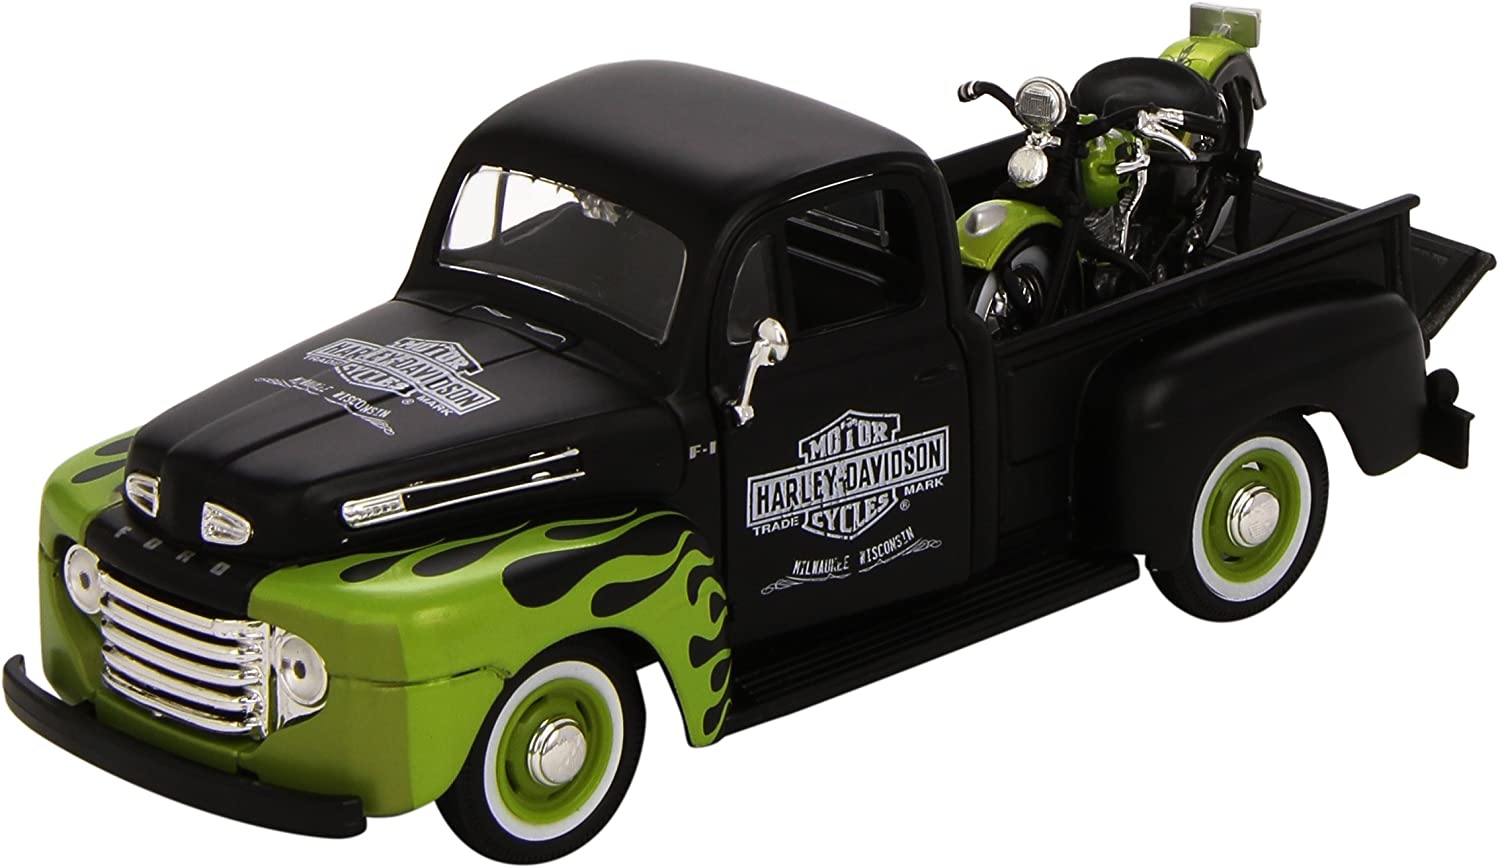 Maisto 1:24 Scale 1948 Ford F-1 Pickup and Harley Davidson 1948 FL Panhead Diecast Vehicles (Styles & Colors Vary)